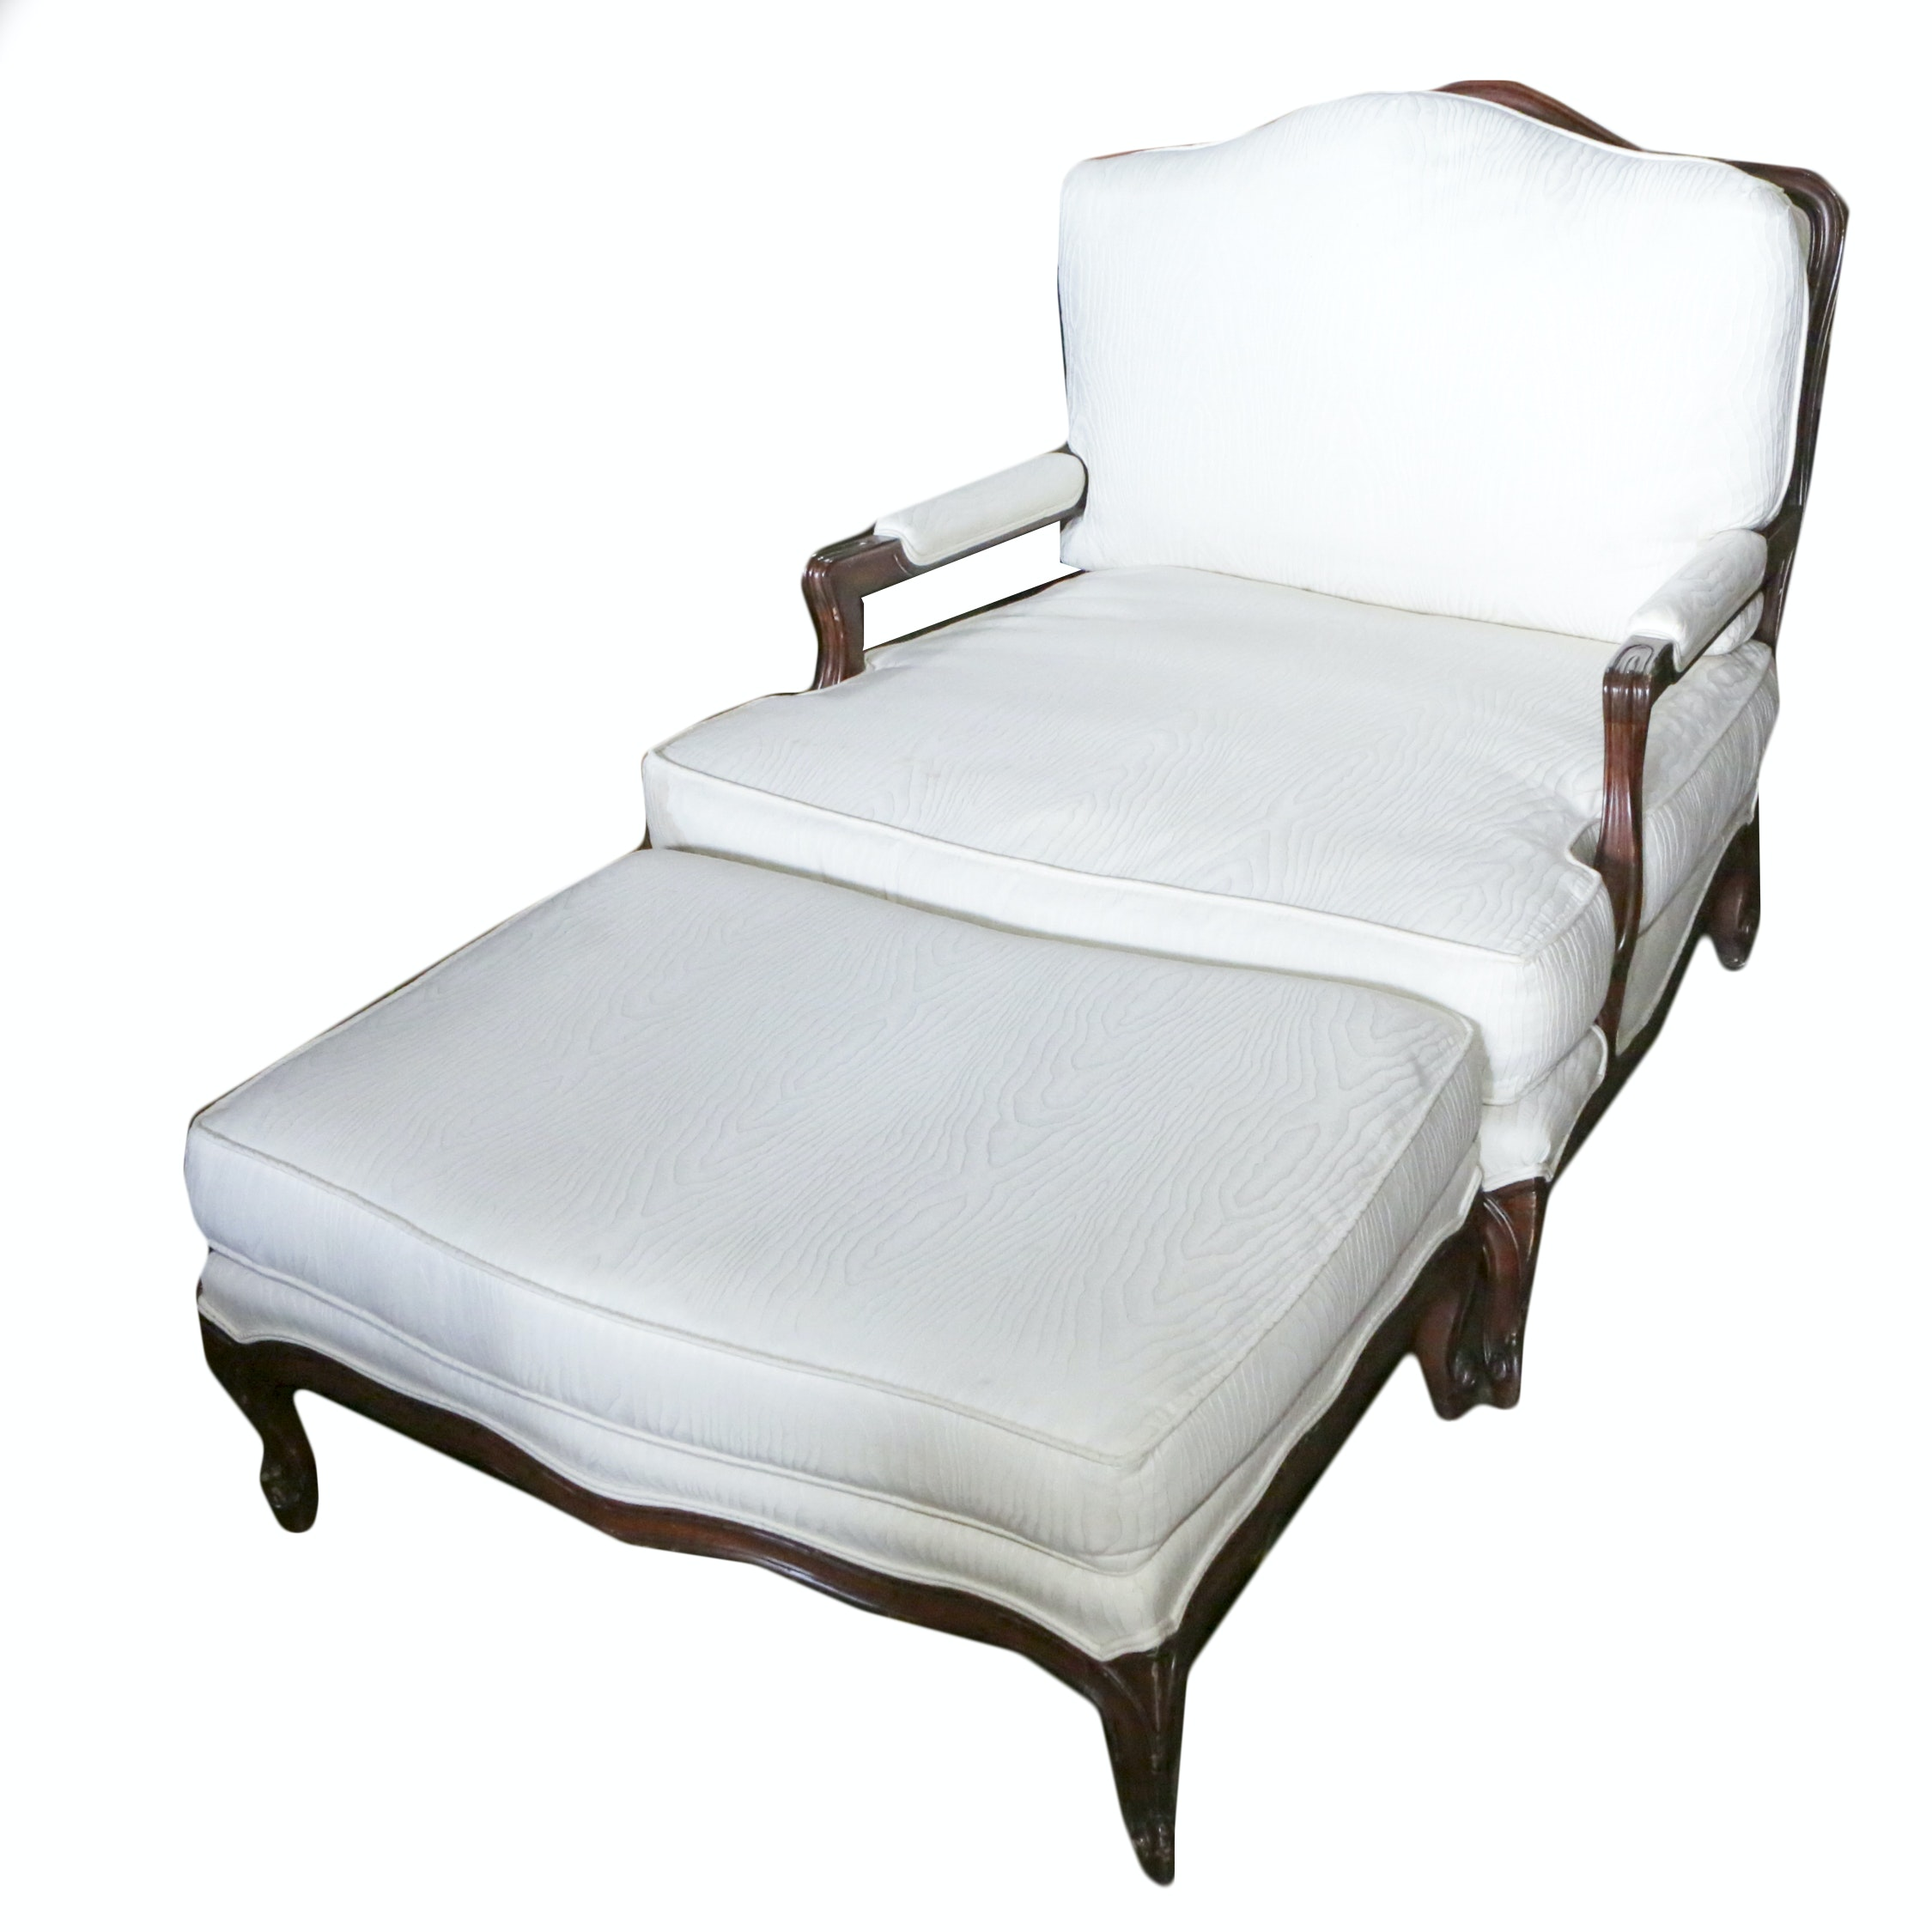 French Provincial Style White Upholstered Armchair with Ottoman